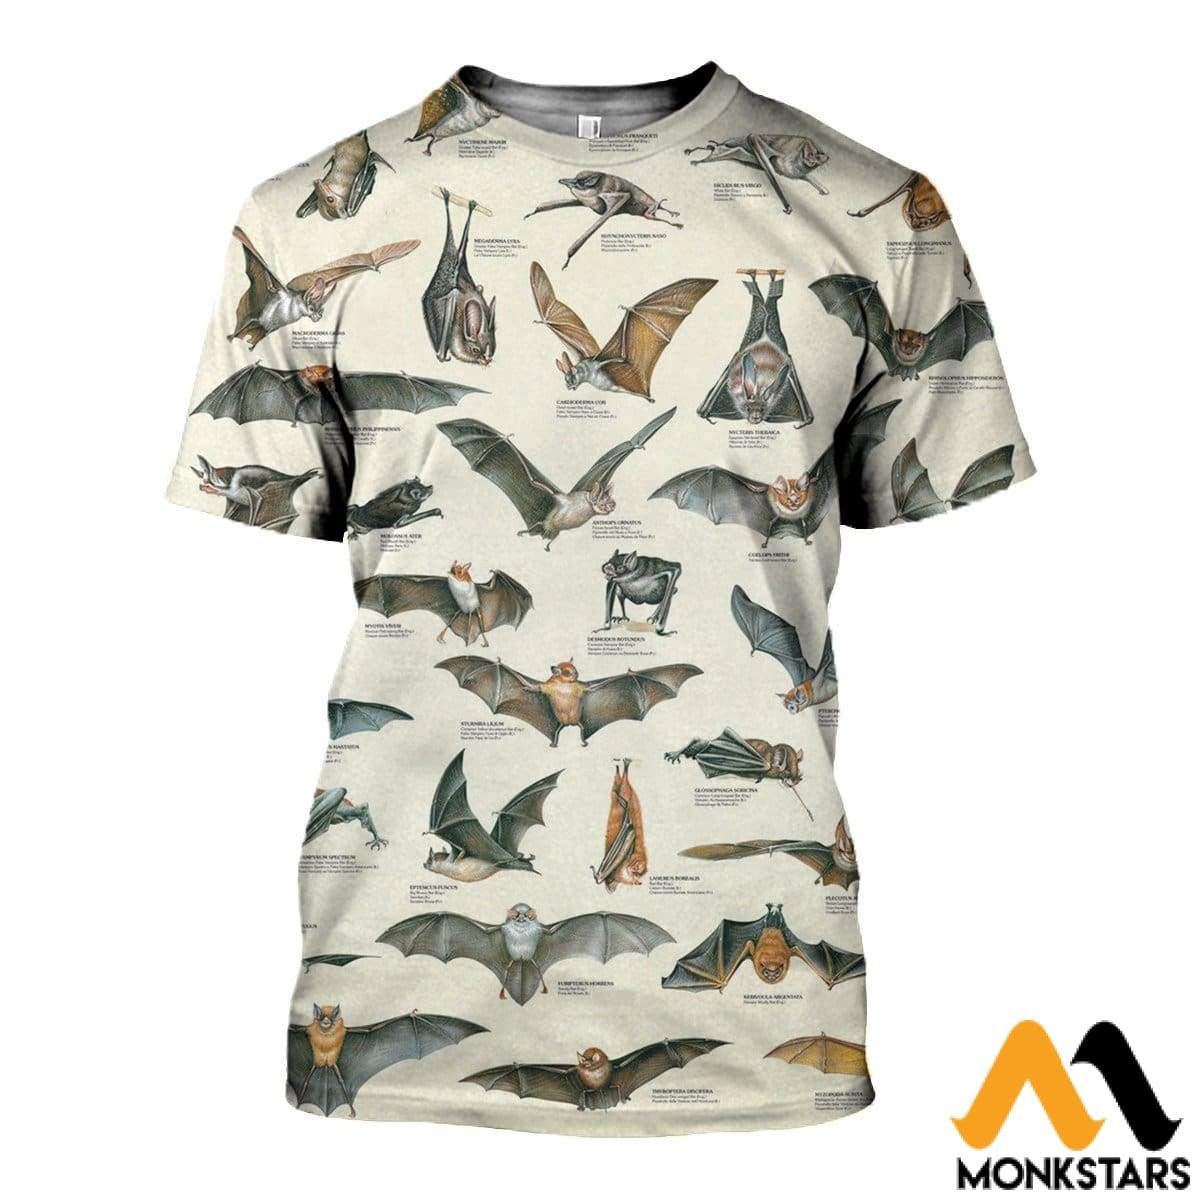 3D All Over Printed Different Types Of Bats Shirts And Shorts T-Shirt / Xs Clothes